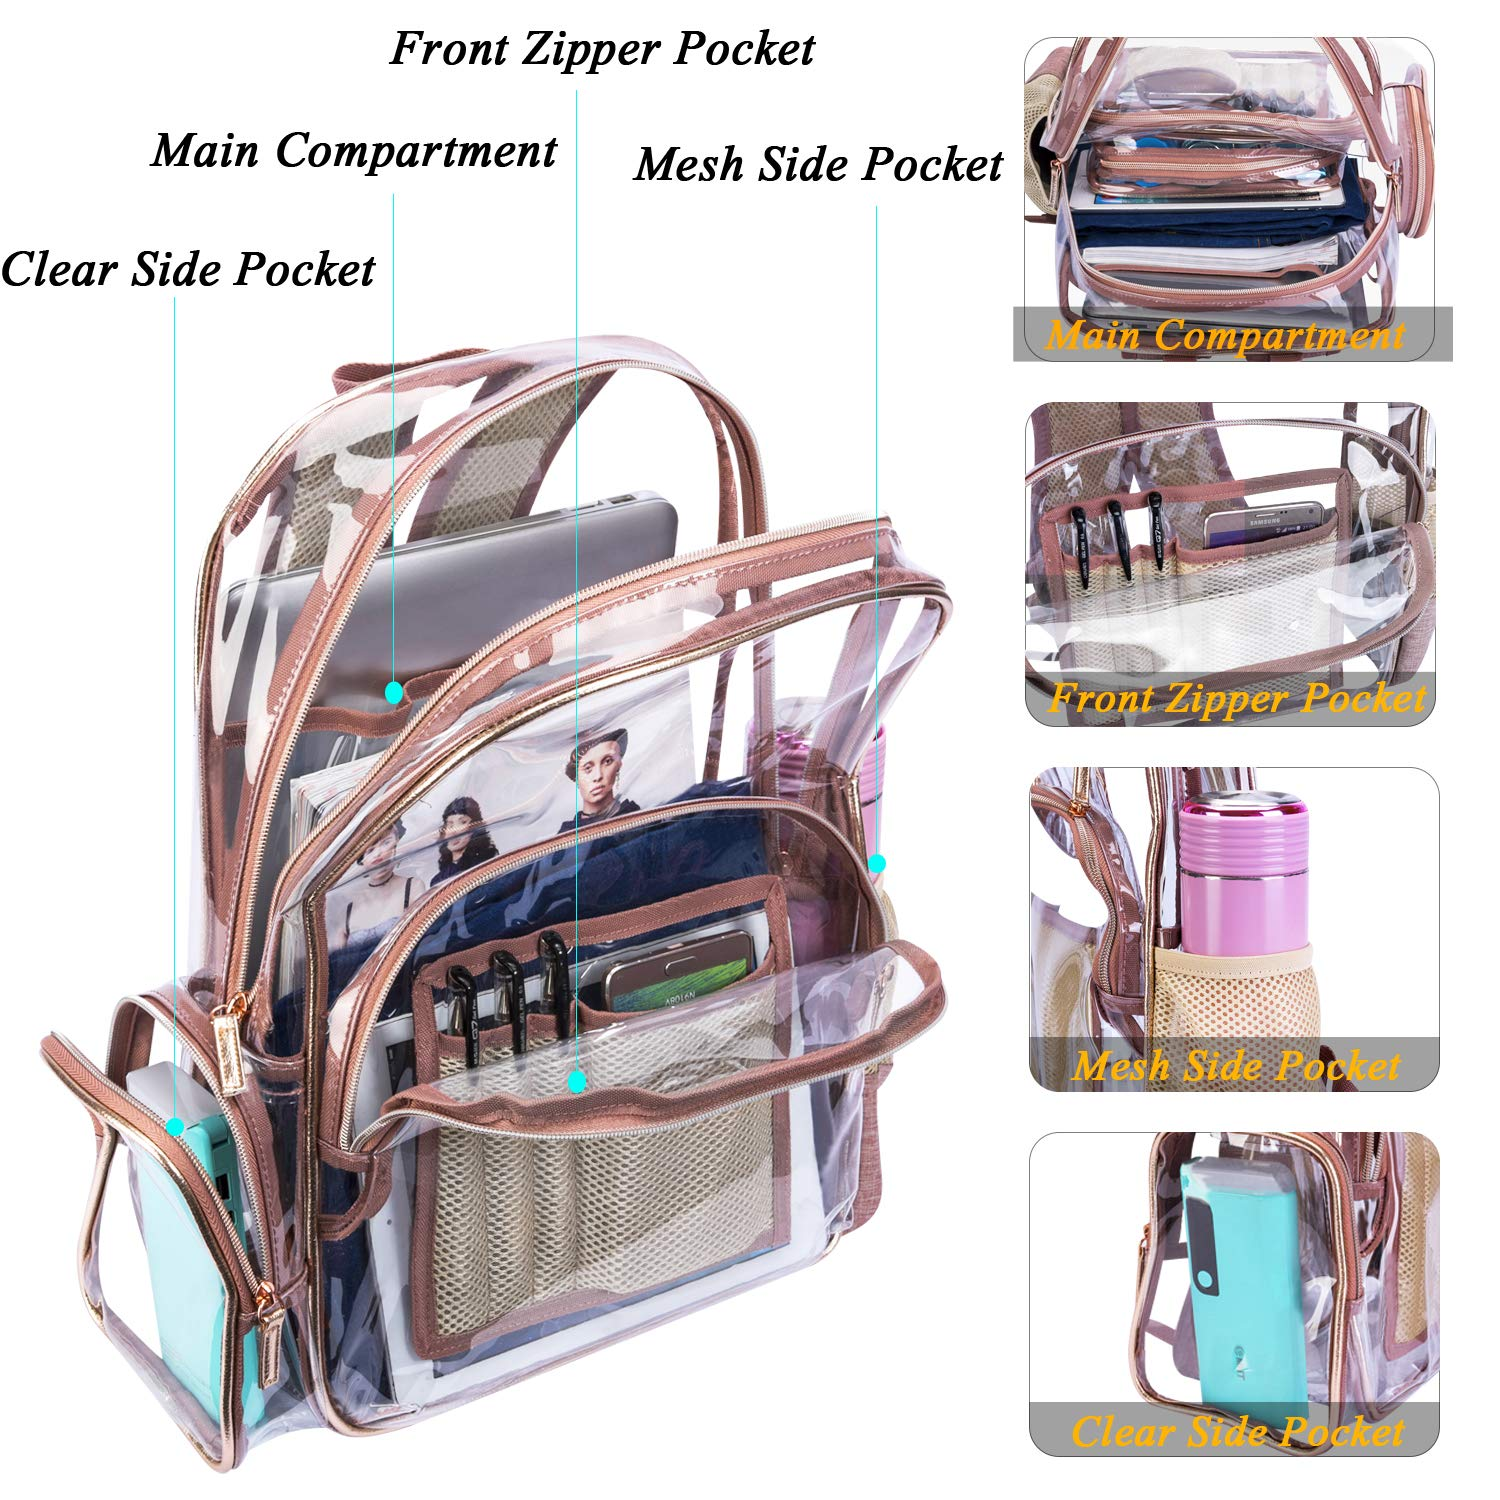 NiceEbag Clear Backpack with Cosmetic Bag & Case, Clear Transparent PVC Multi-pockets School Backpack Outdoor Bookbag Travel Makeup Quart Luggage Pouch Organizer Fit 15.6 Inch Laptop (Rose Gold) by NiceEbag (Image #4)